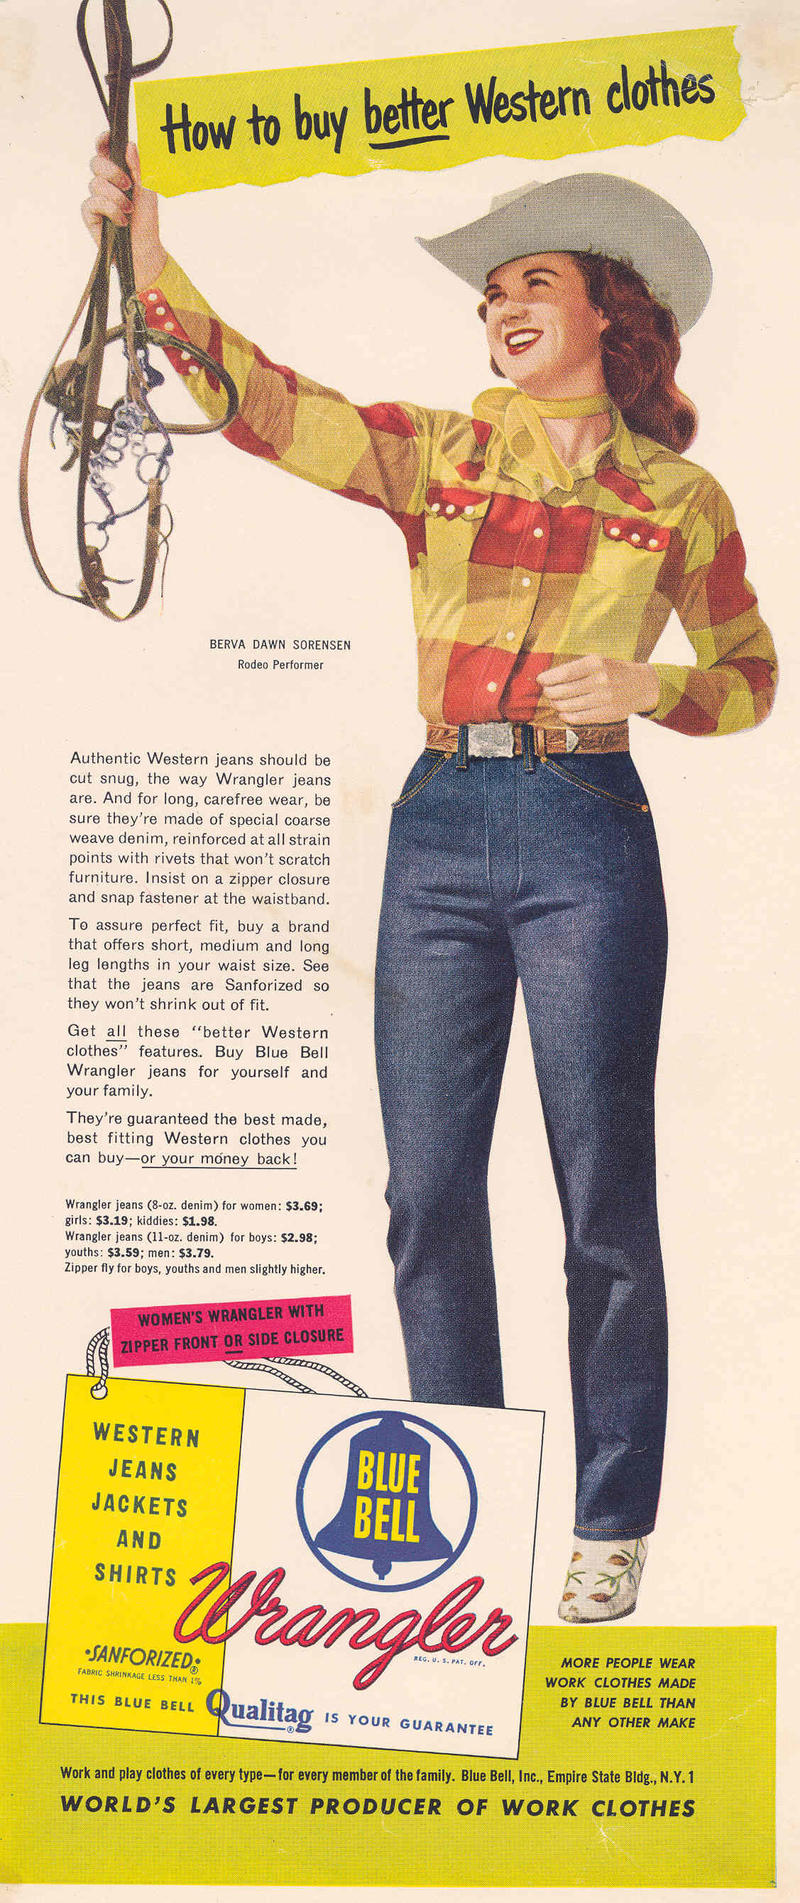 A Wrangler advertisement featuring rodeo performer Berva Dawn Sorensen.